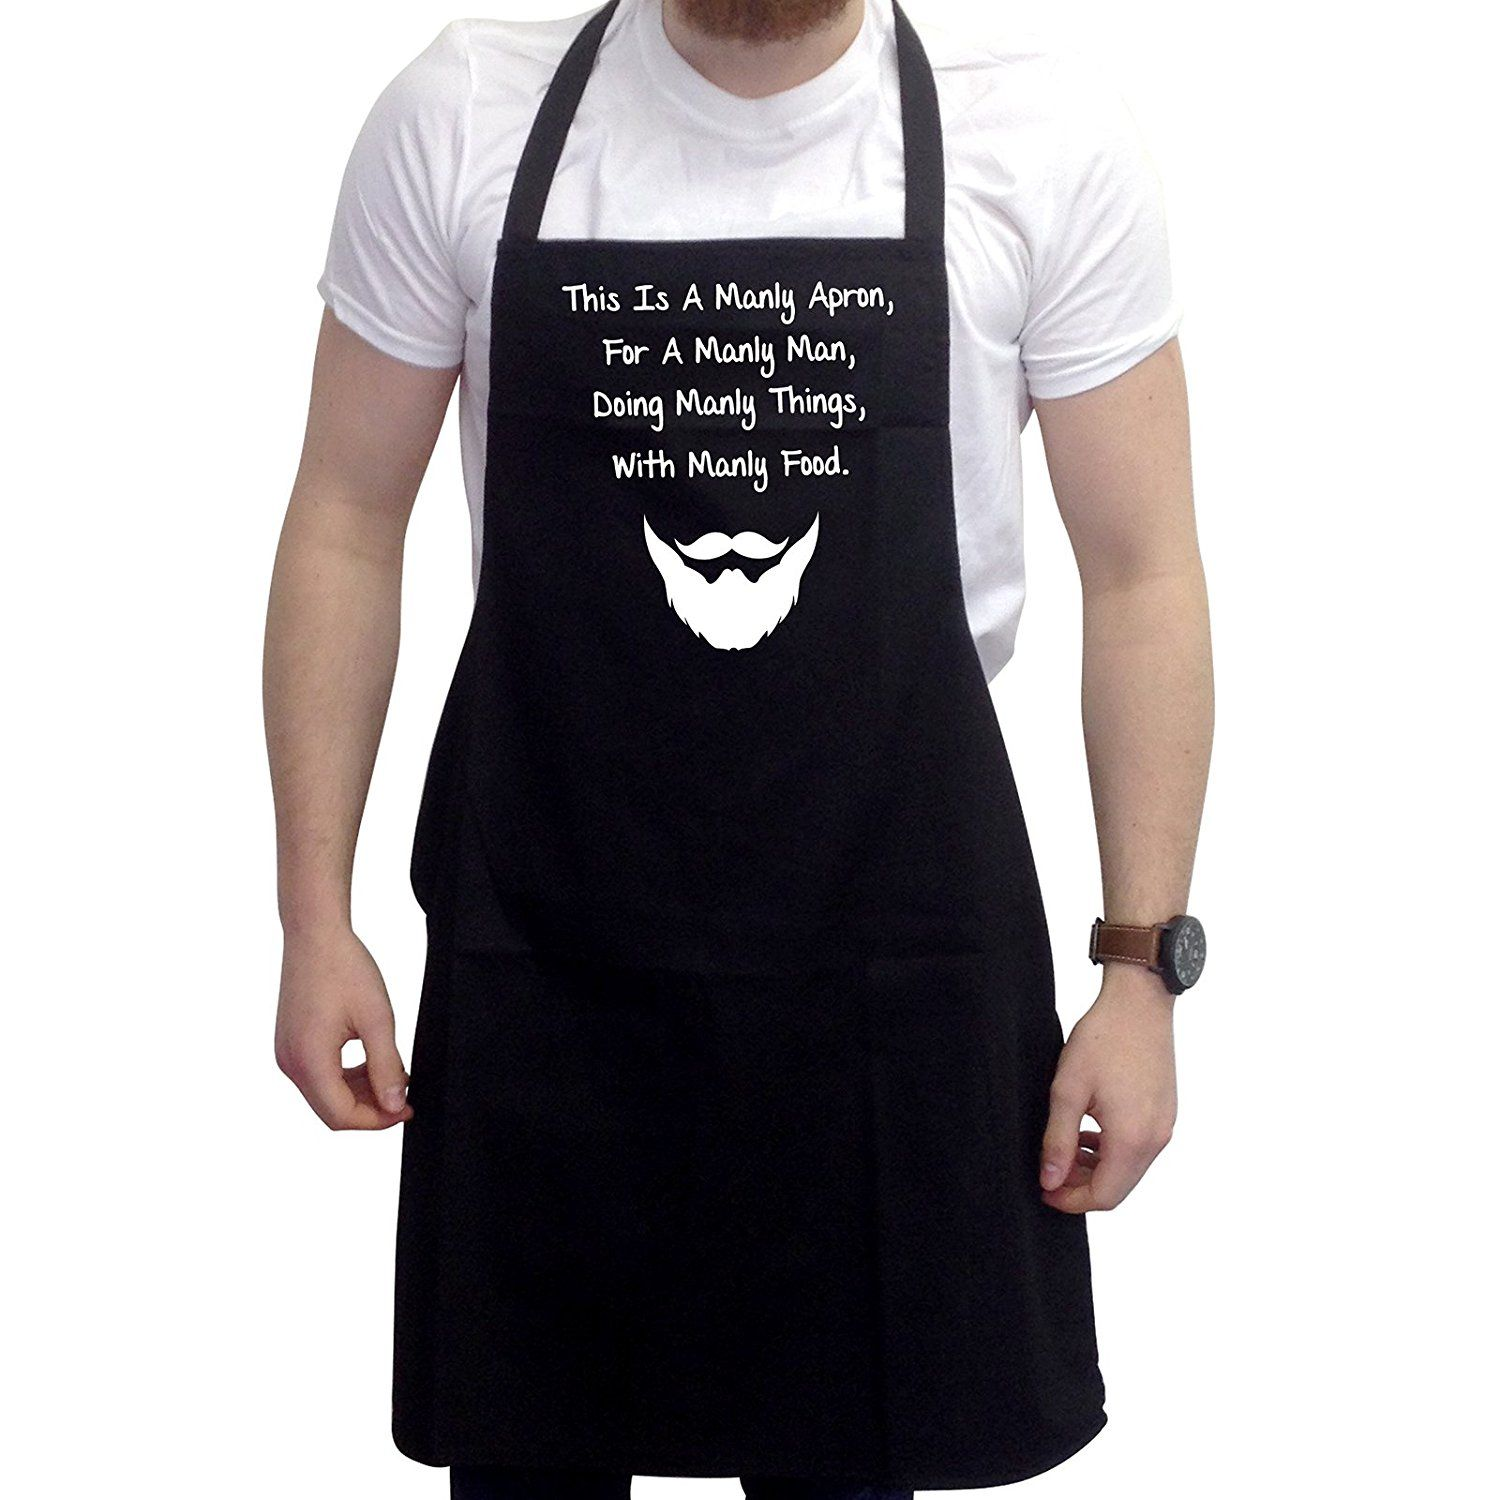 amazon com bbq apron funny aprons this is a manly apron barbecue